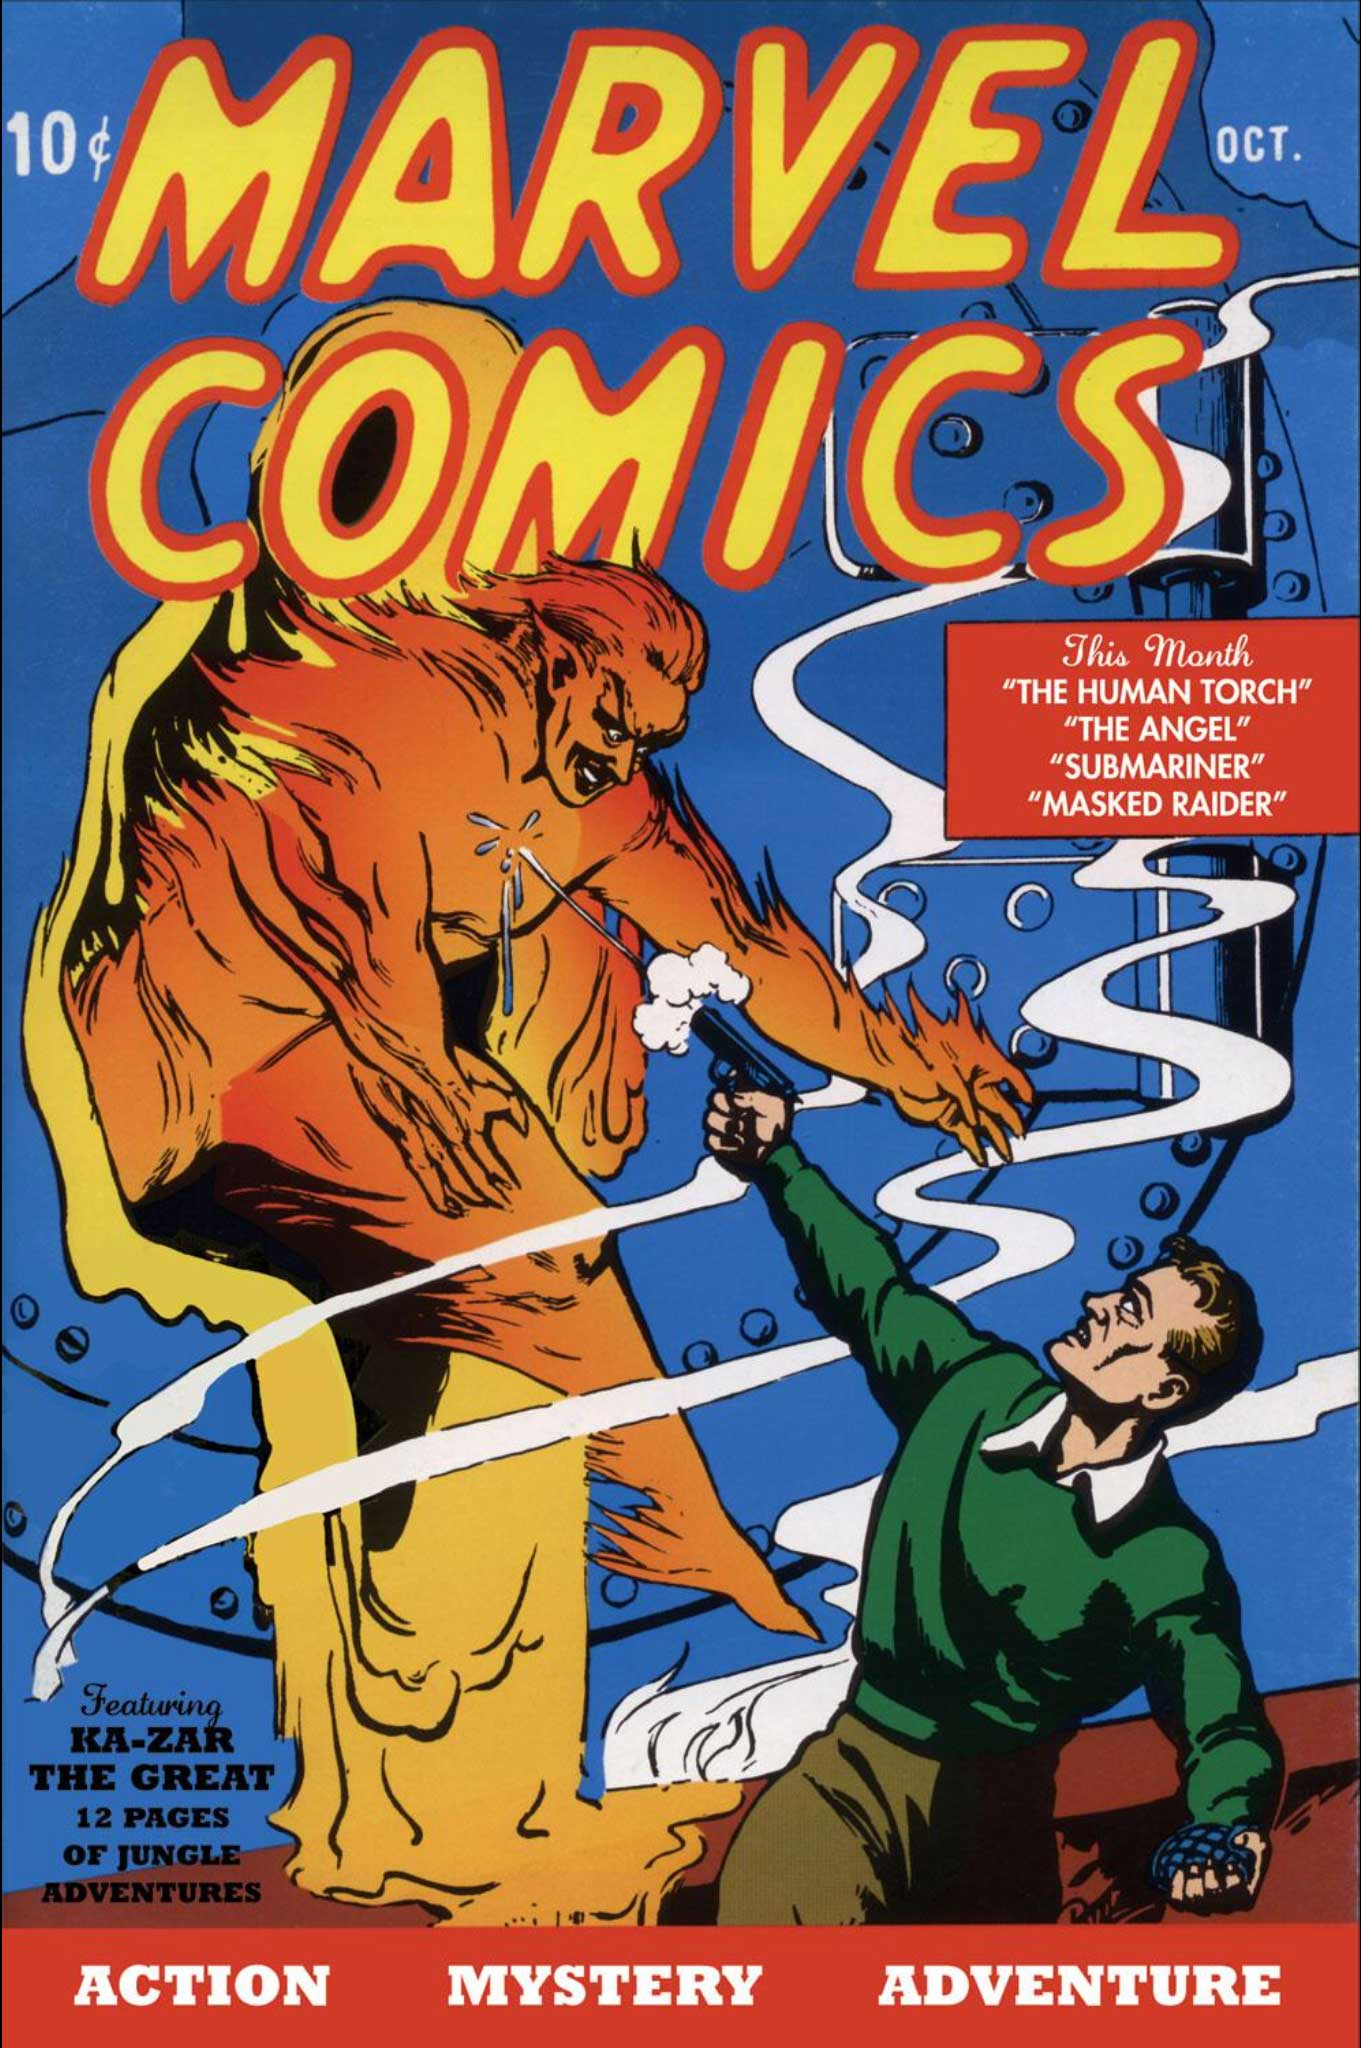 Marvel Comics #1 (1939) cover featuring The Human Torch